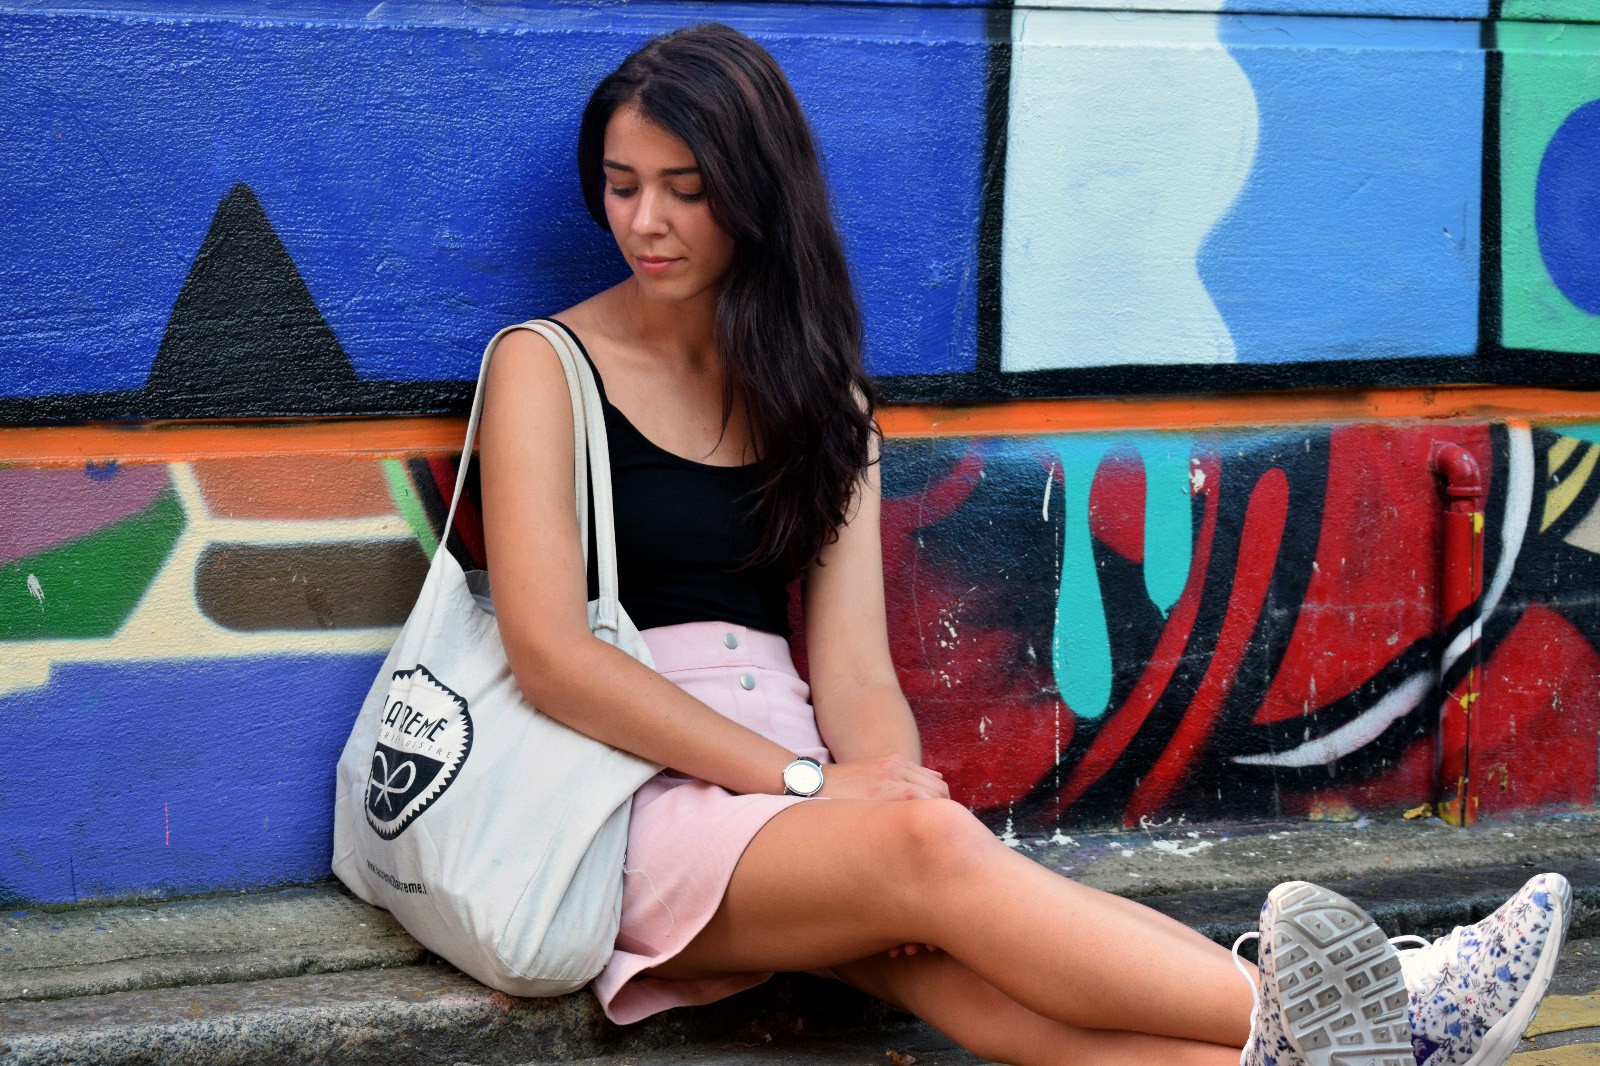 ootd, outfits, french blogger, london, shoreditch, east end, street art, Le coq sportif porcelaine,